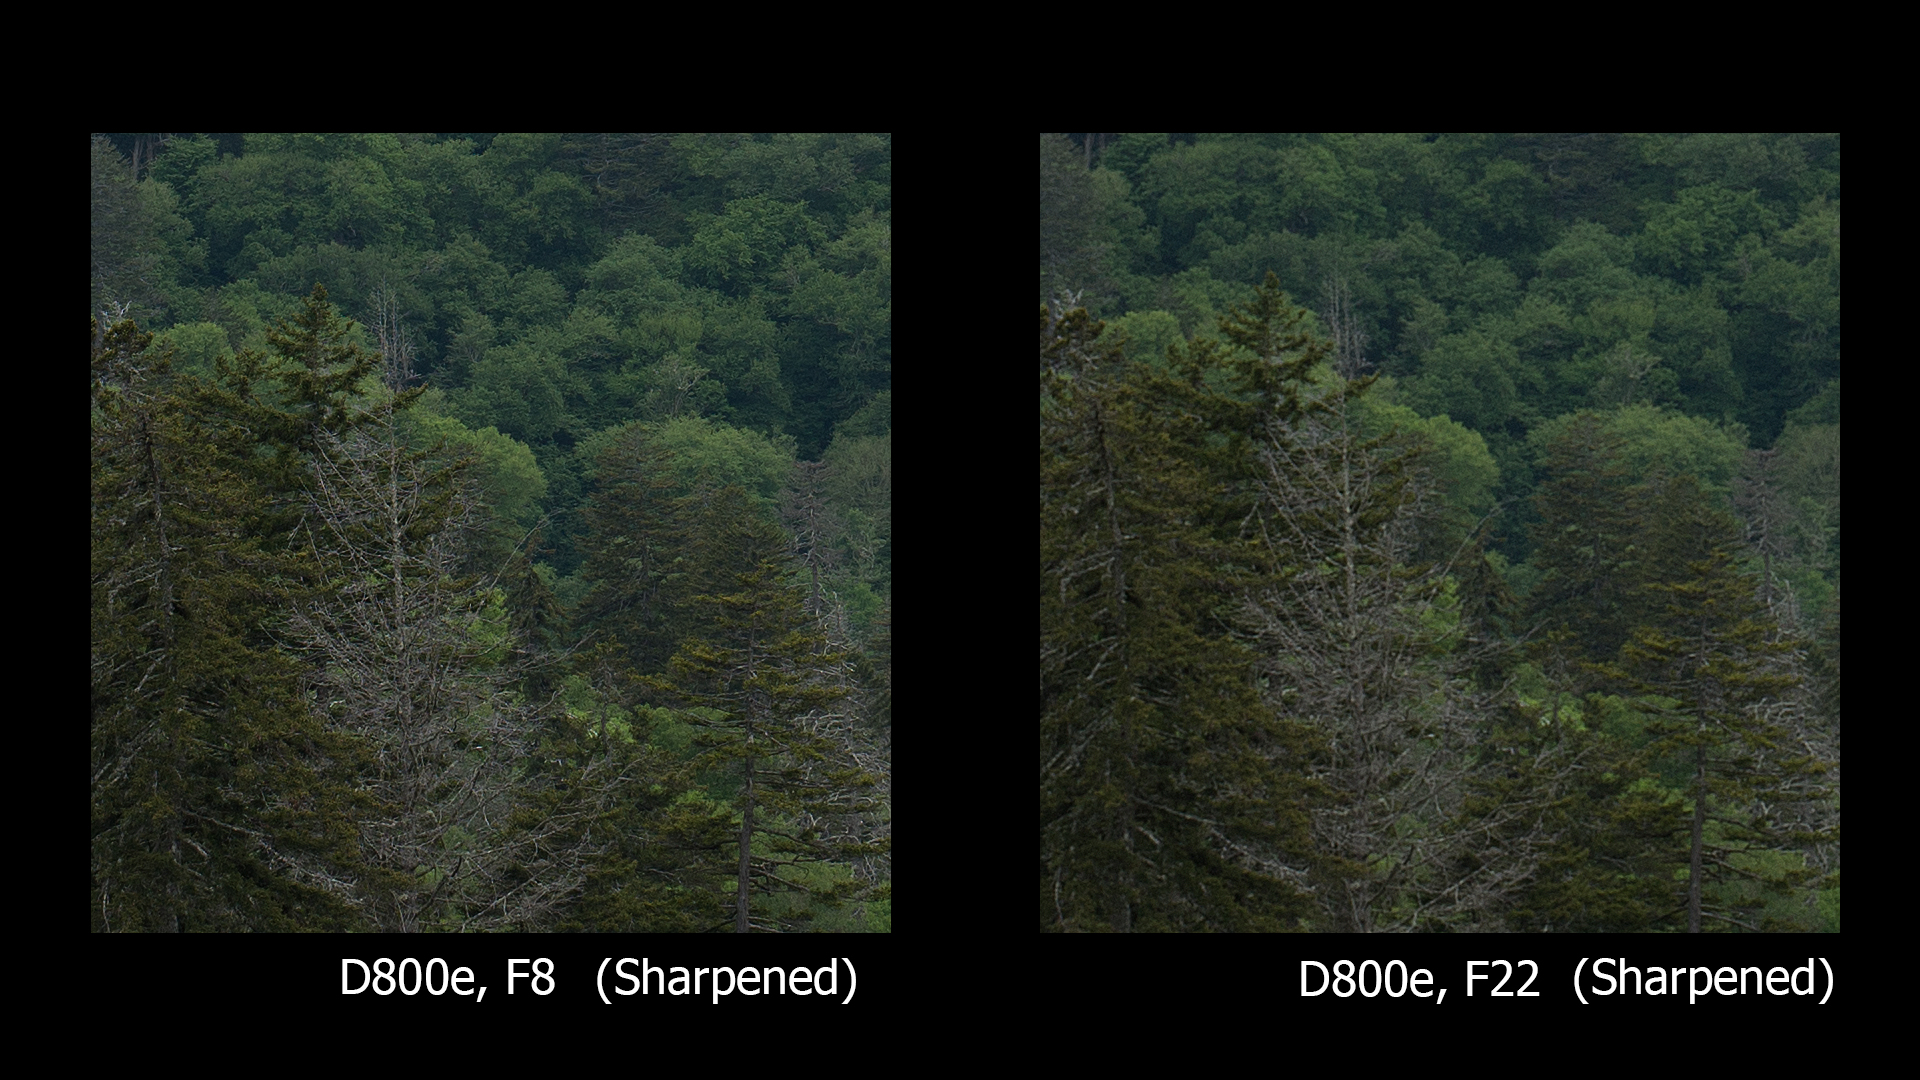 D800e, F8 and F22, BOTH sharpened